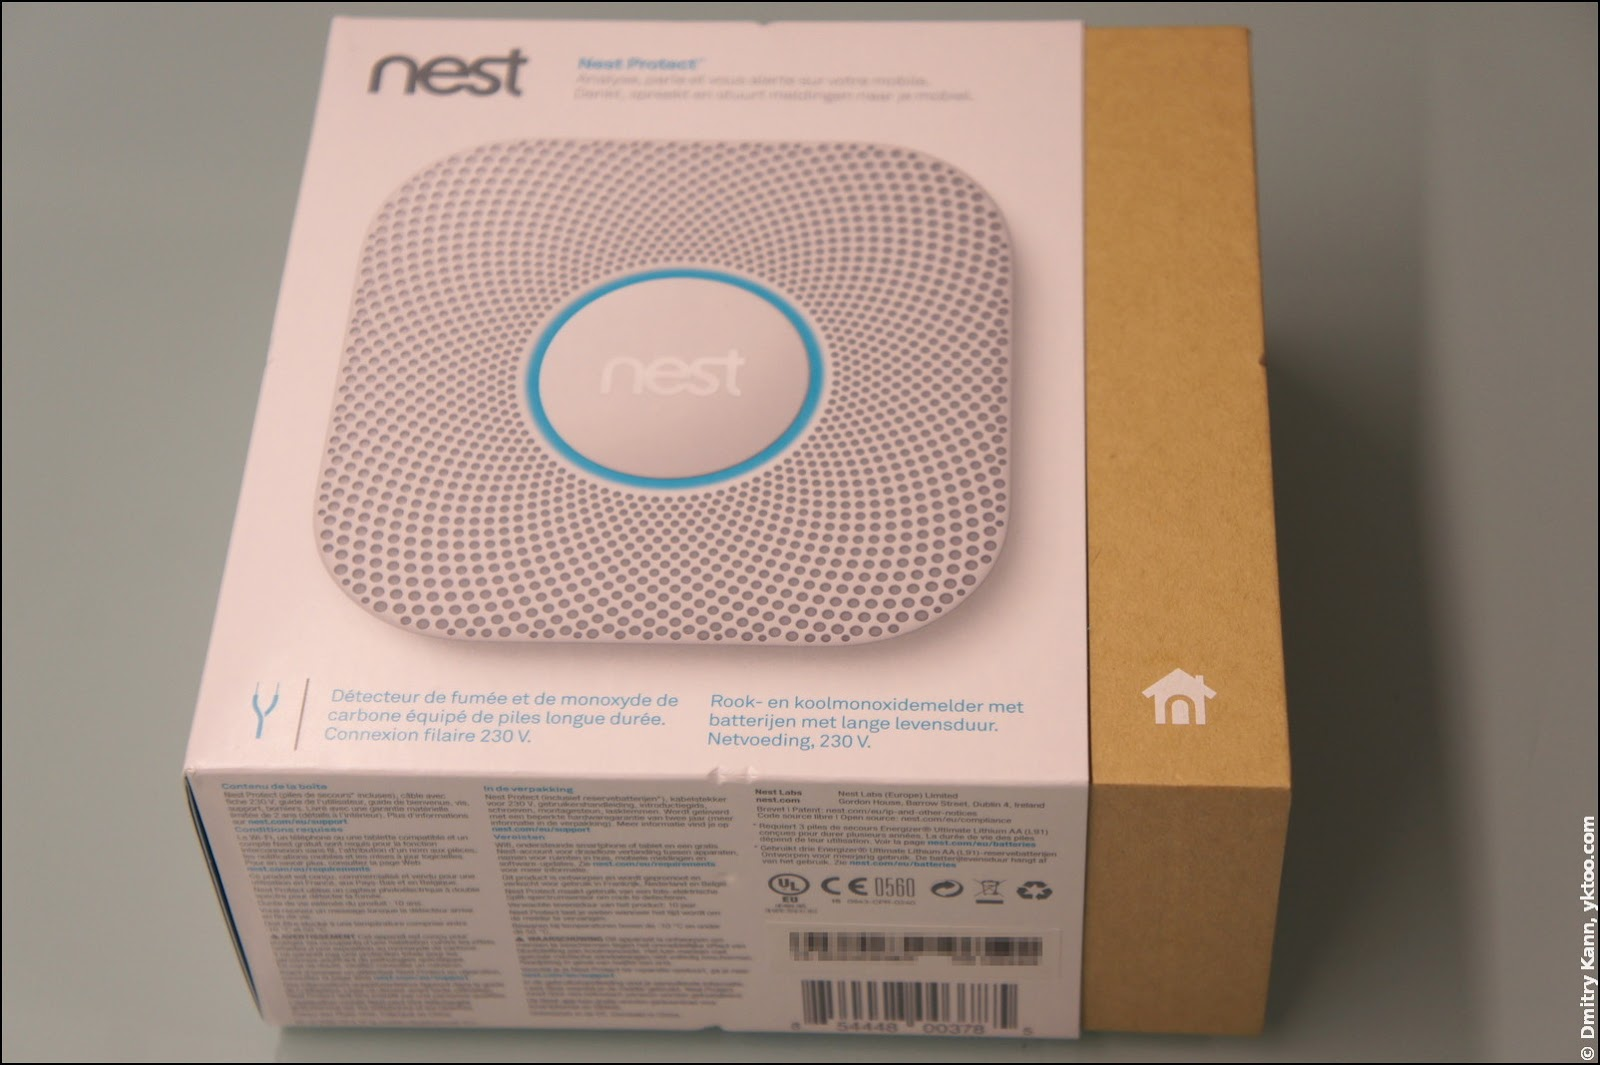 Nest Protect 2 packaging.